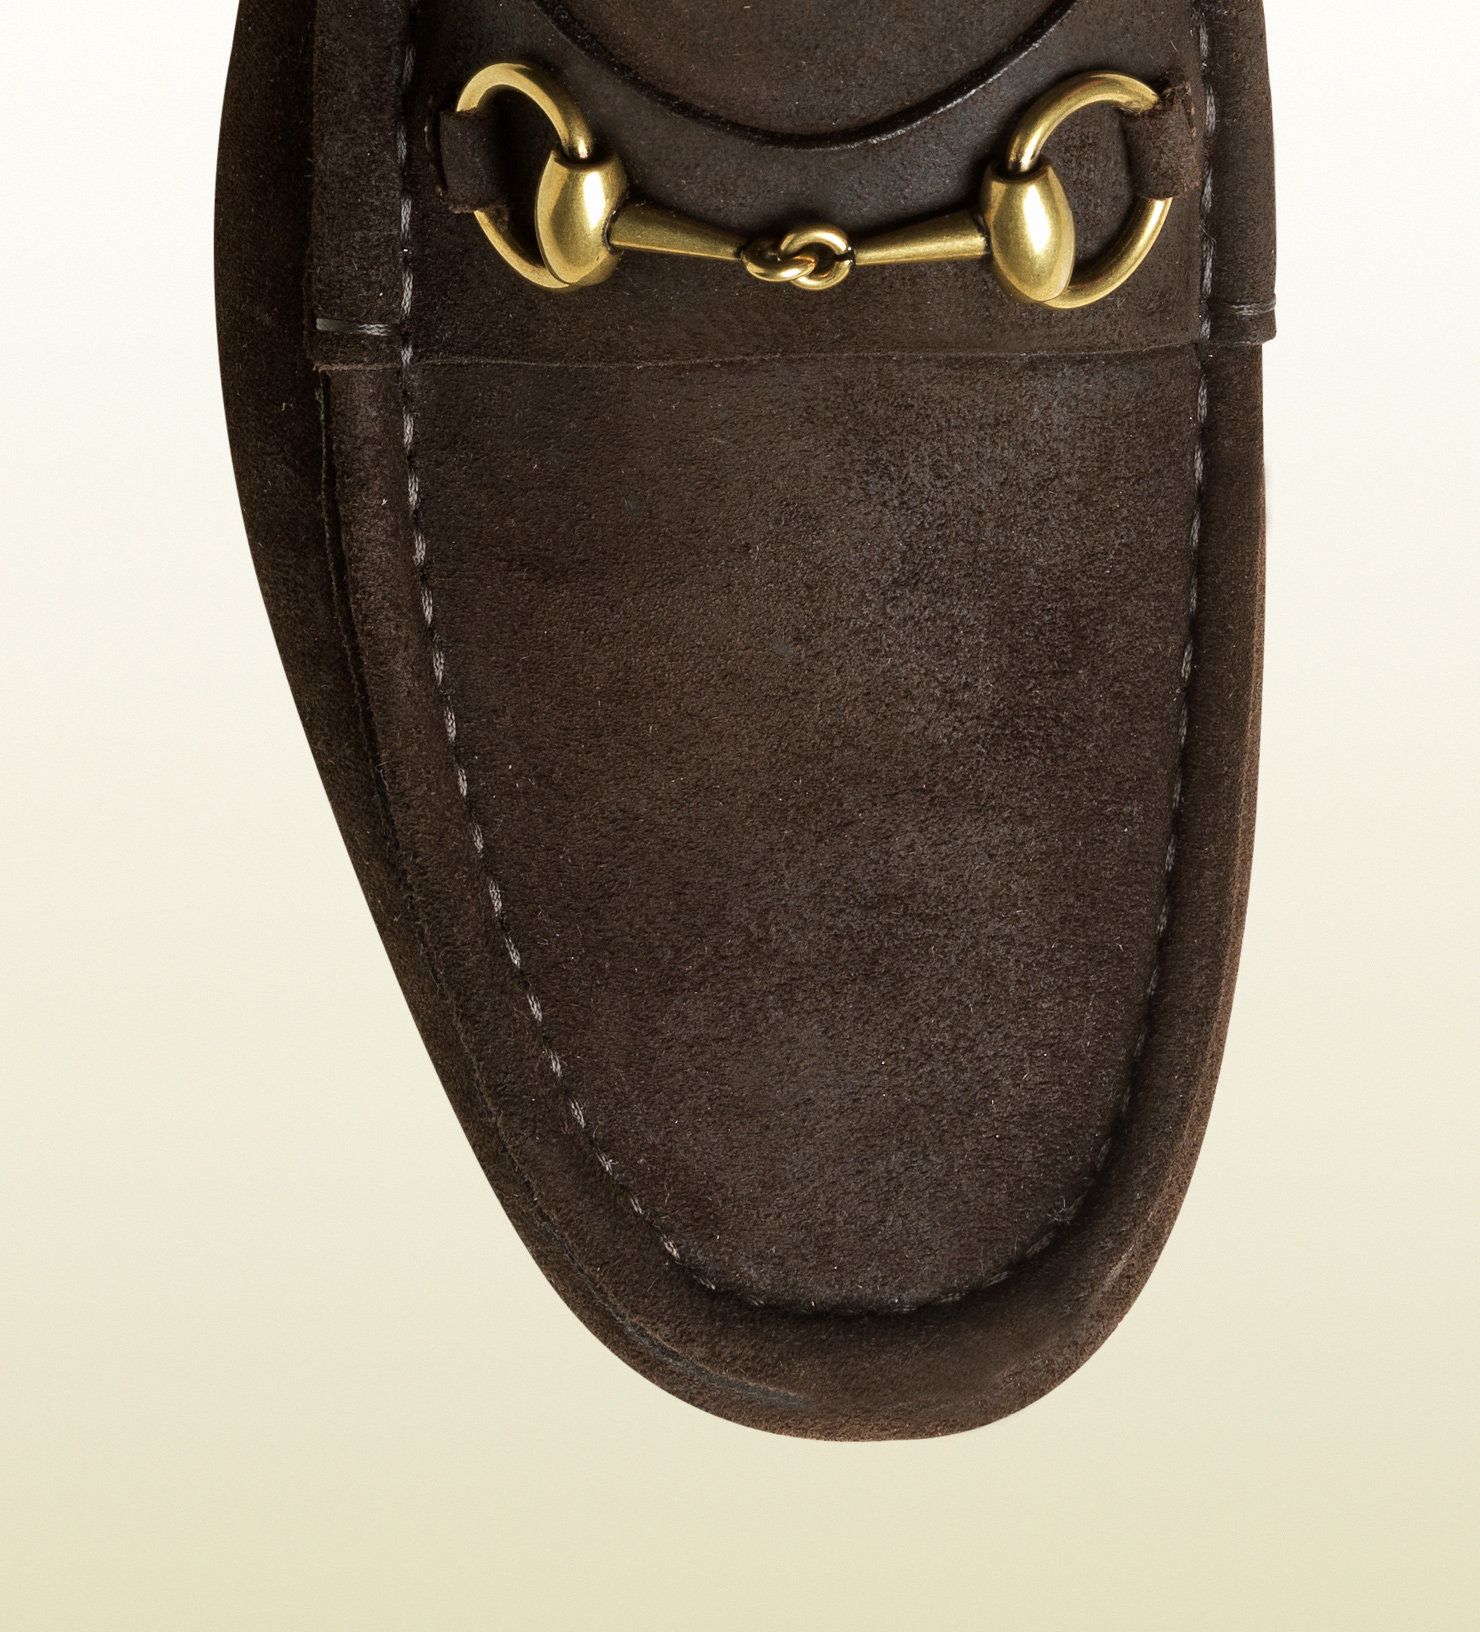 Gucci 1953 Horsebit Loafer In Suede In Brown For Men Lyst